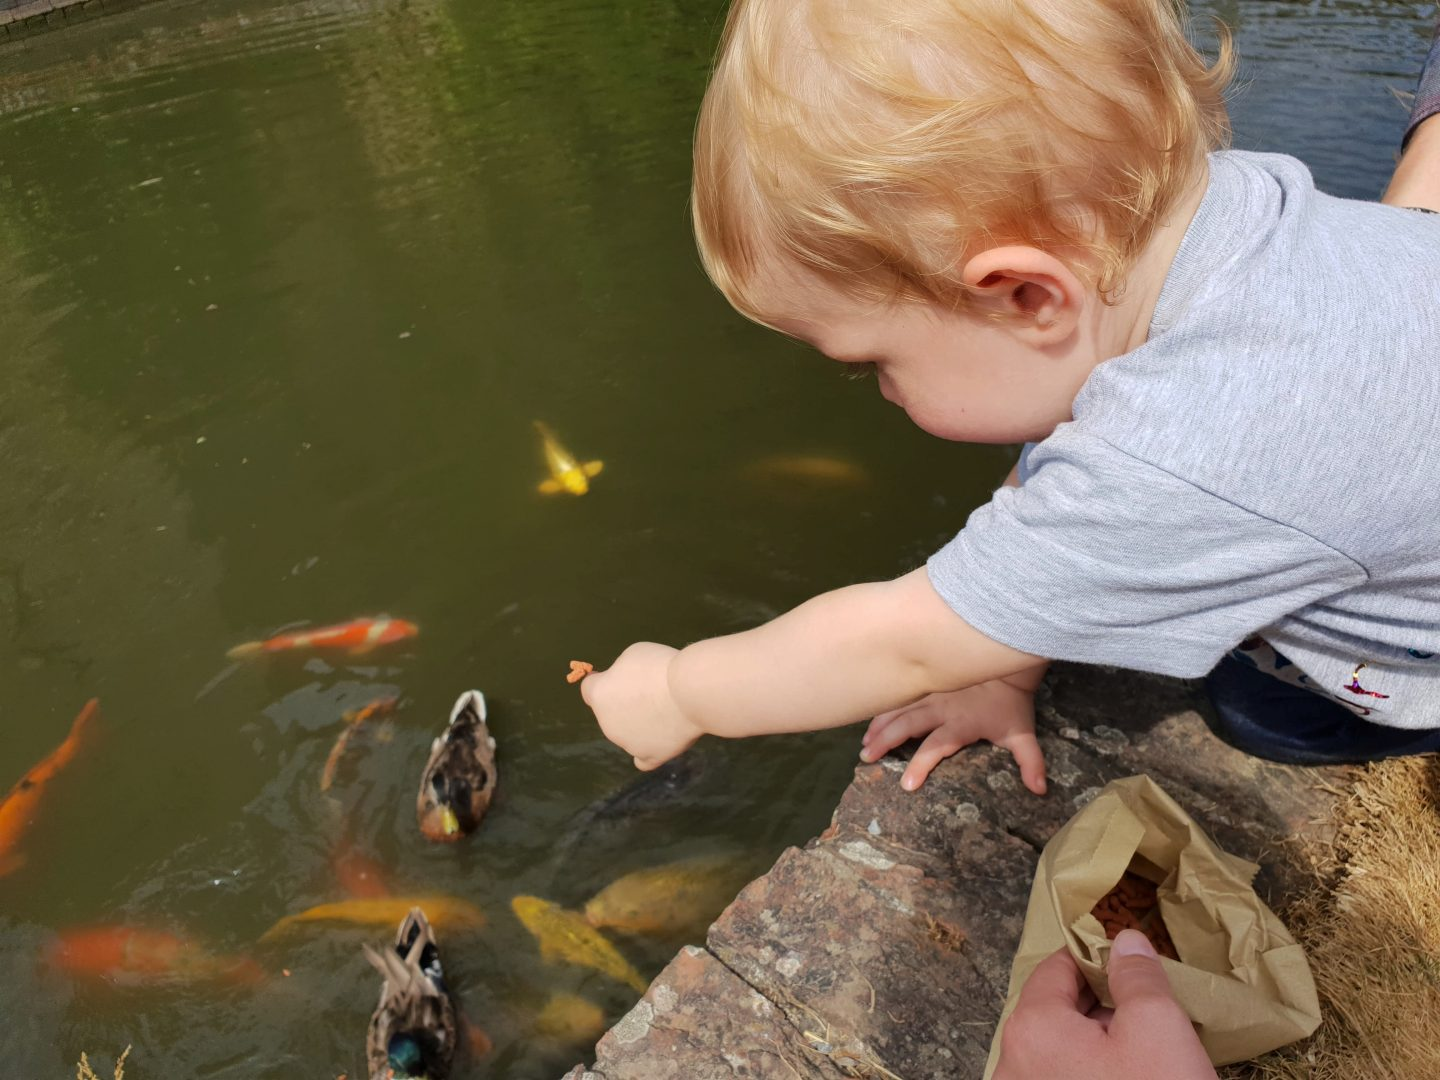 Feeding Koi fish in the moat at Hever Castle